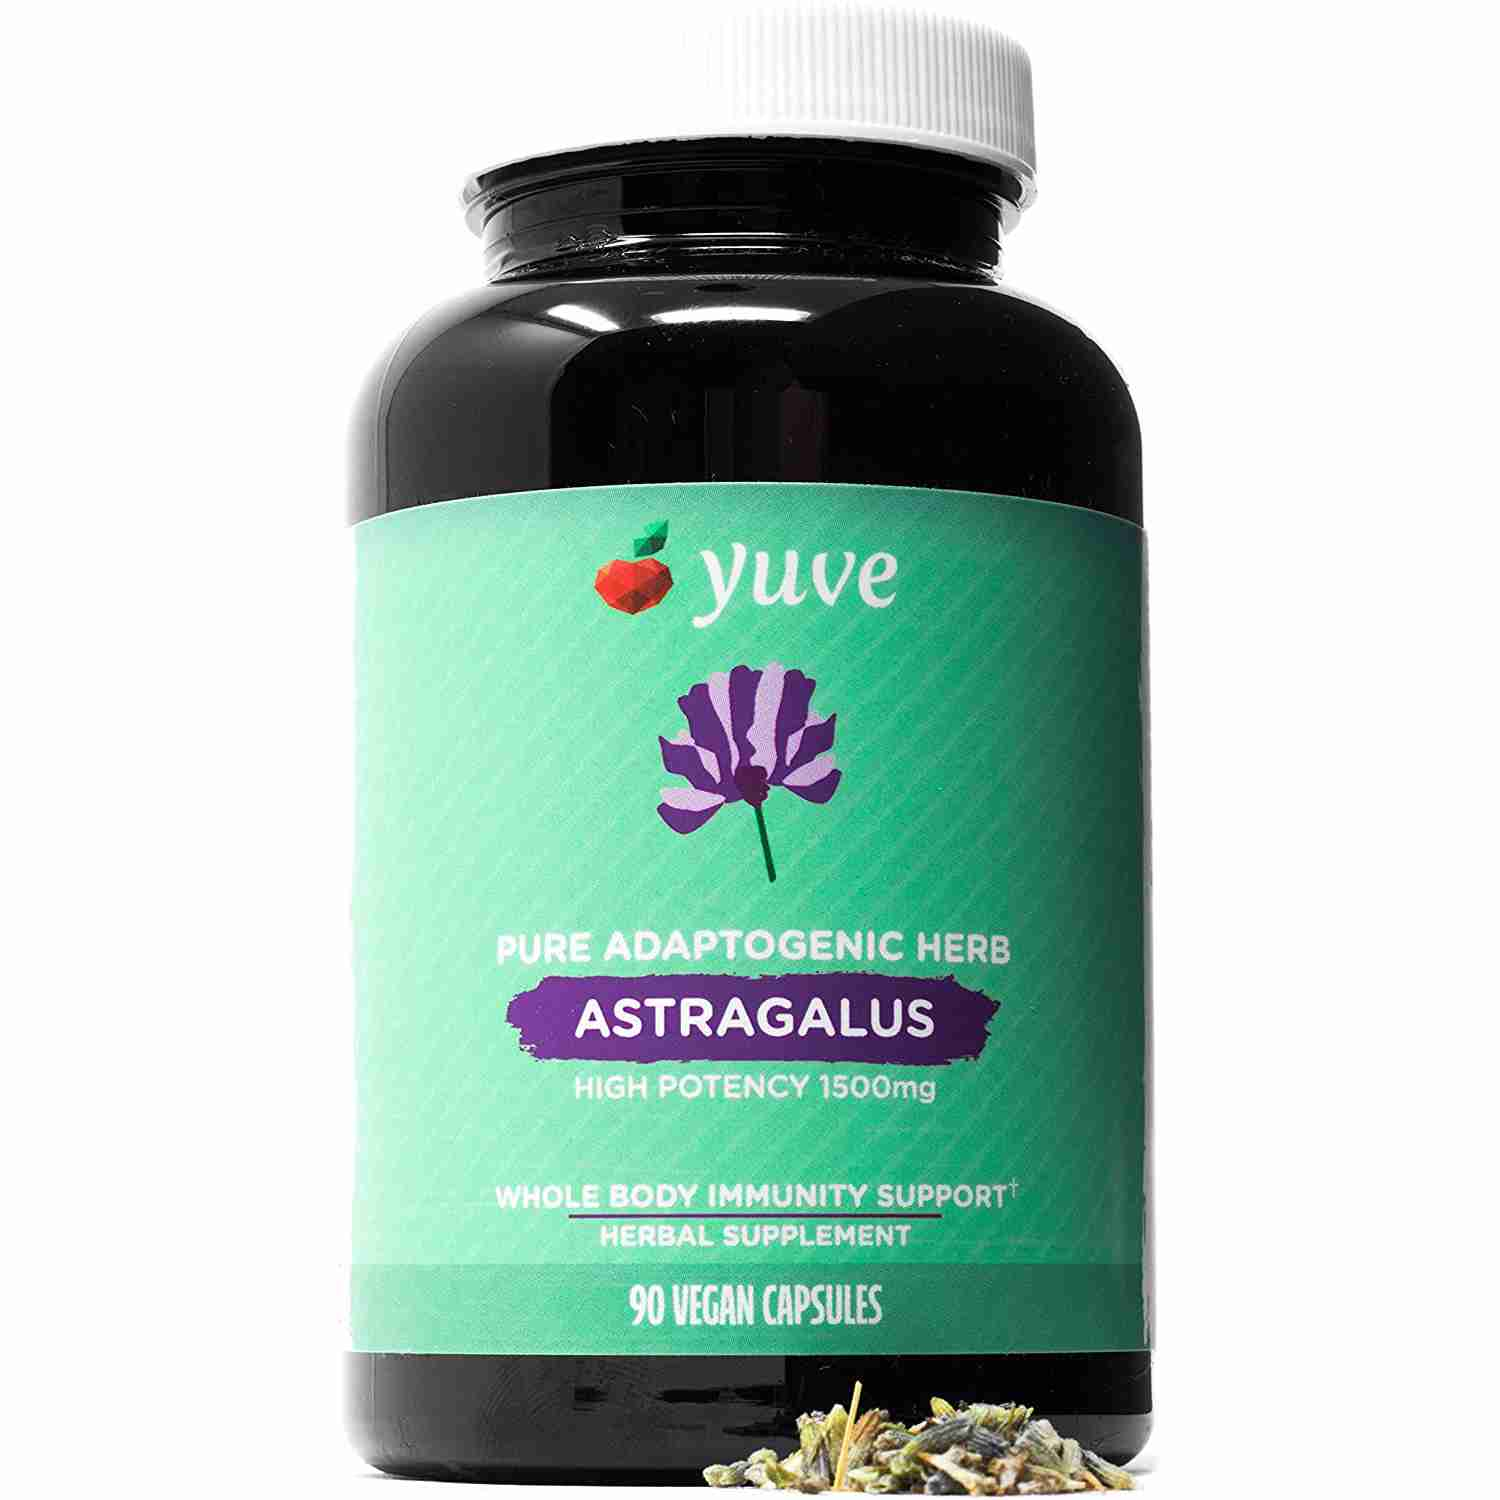 astragalus-supplements with cash back rebate